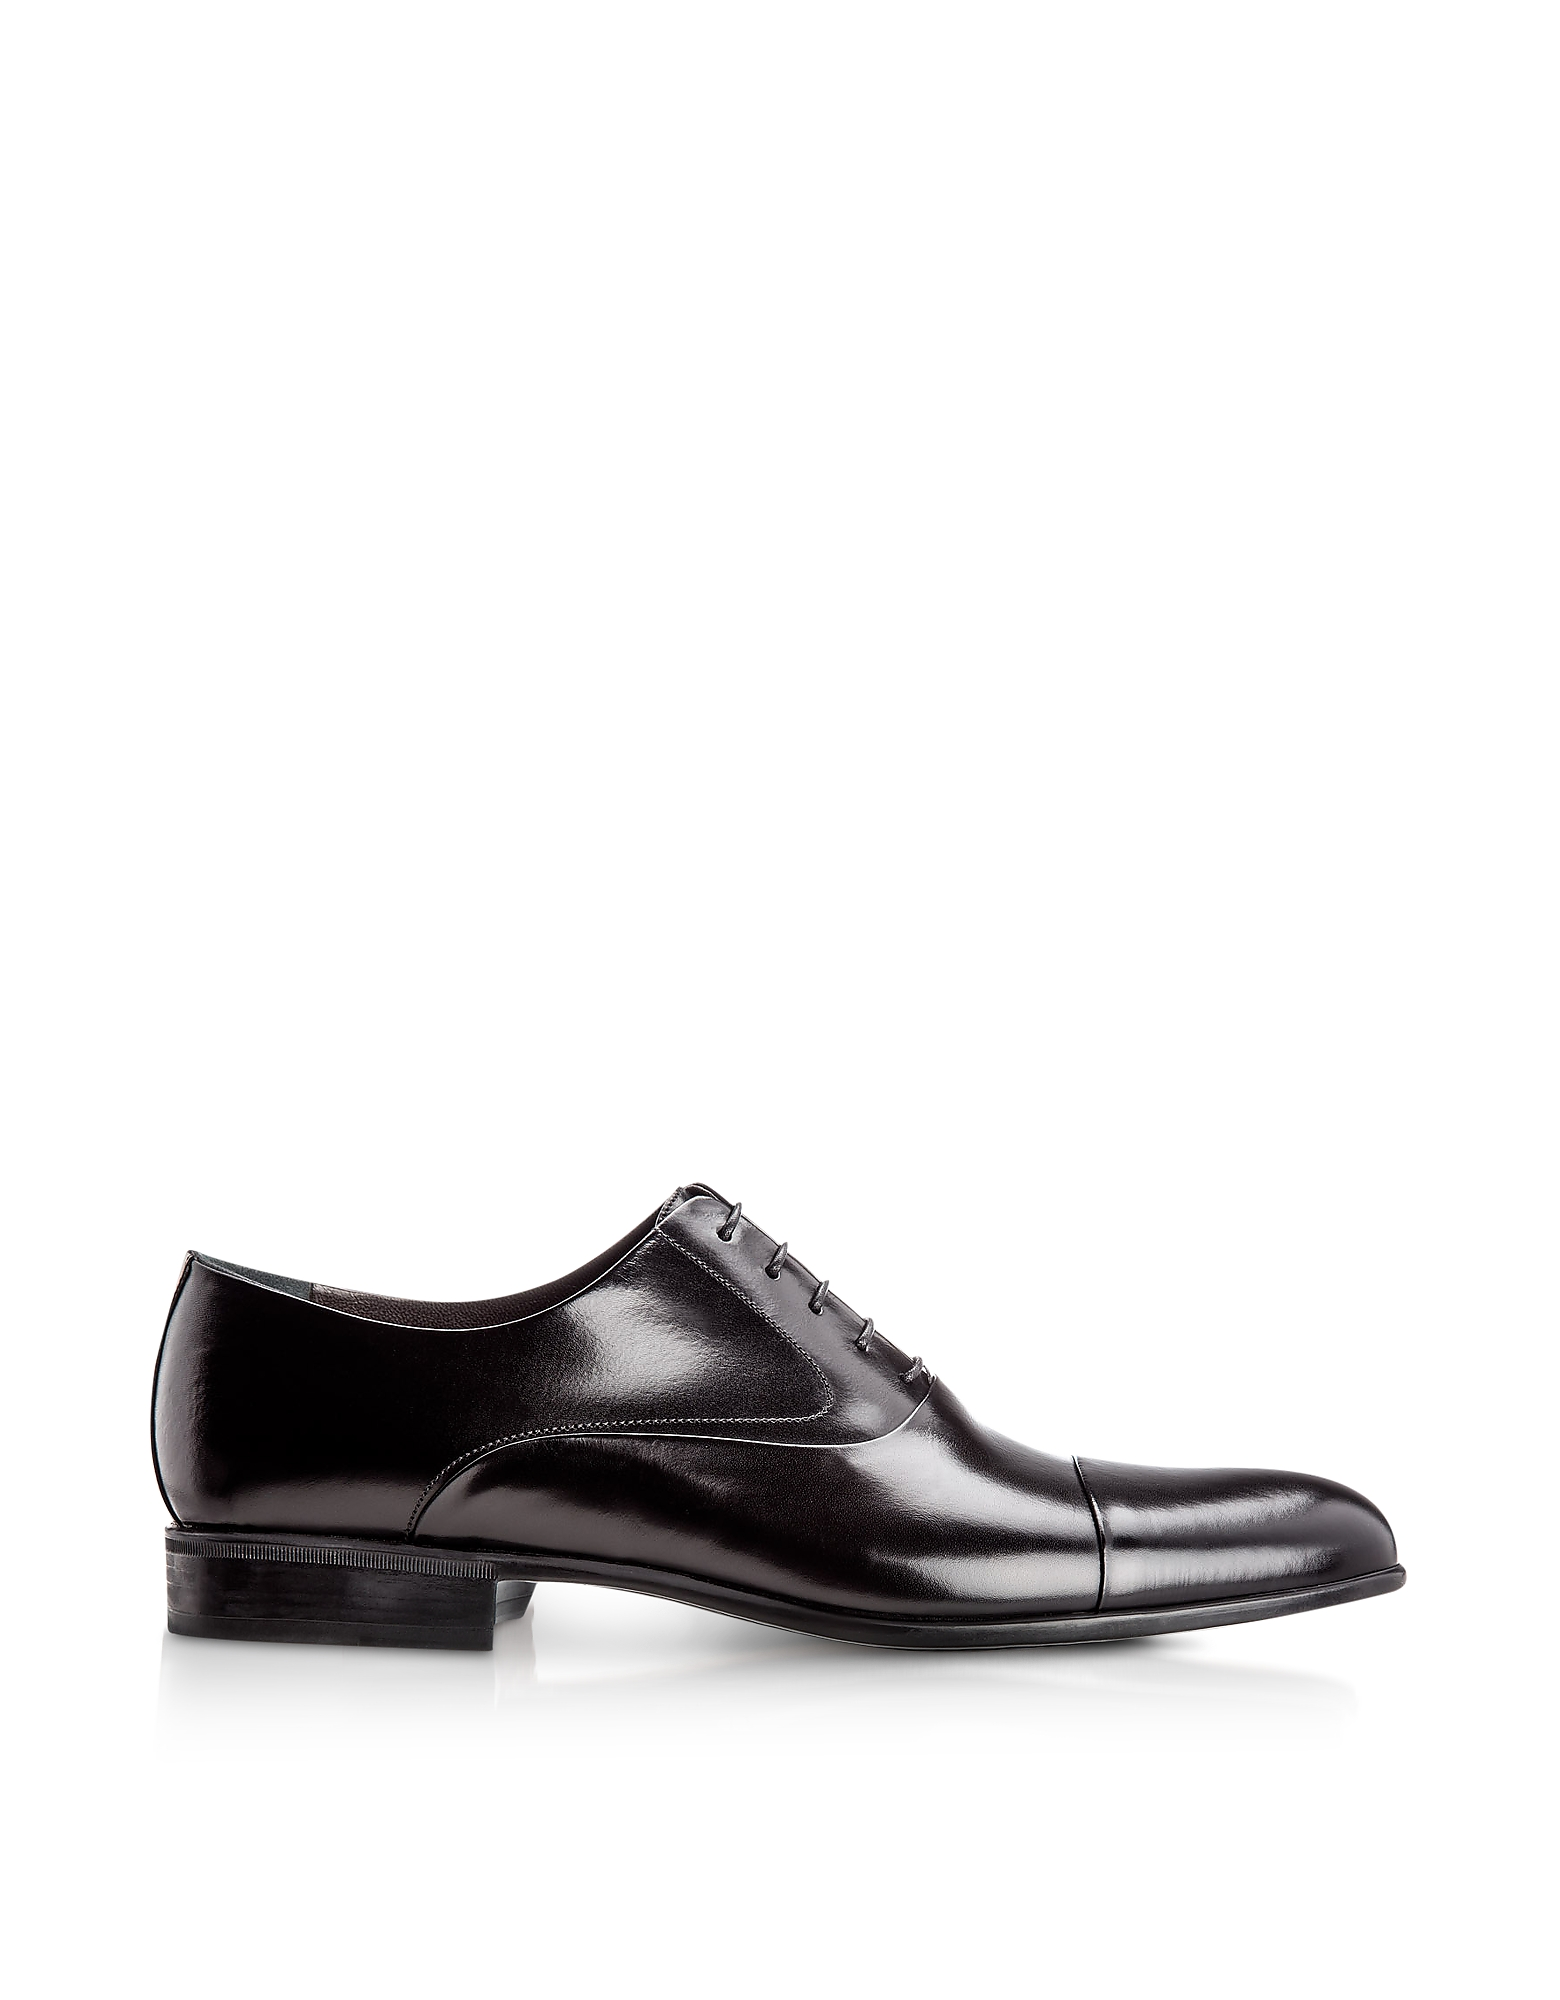 Dublin Black Calfskin Oxford Shoes